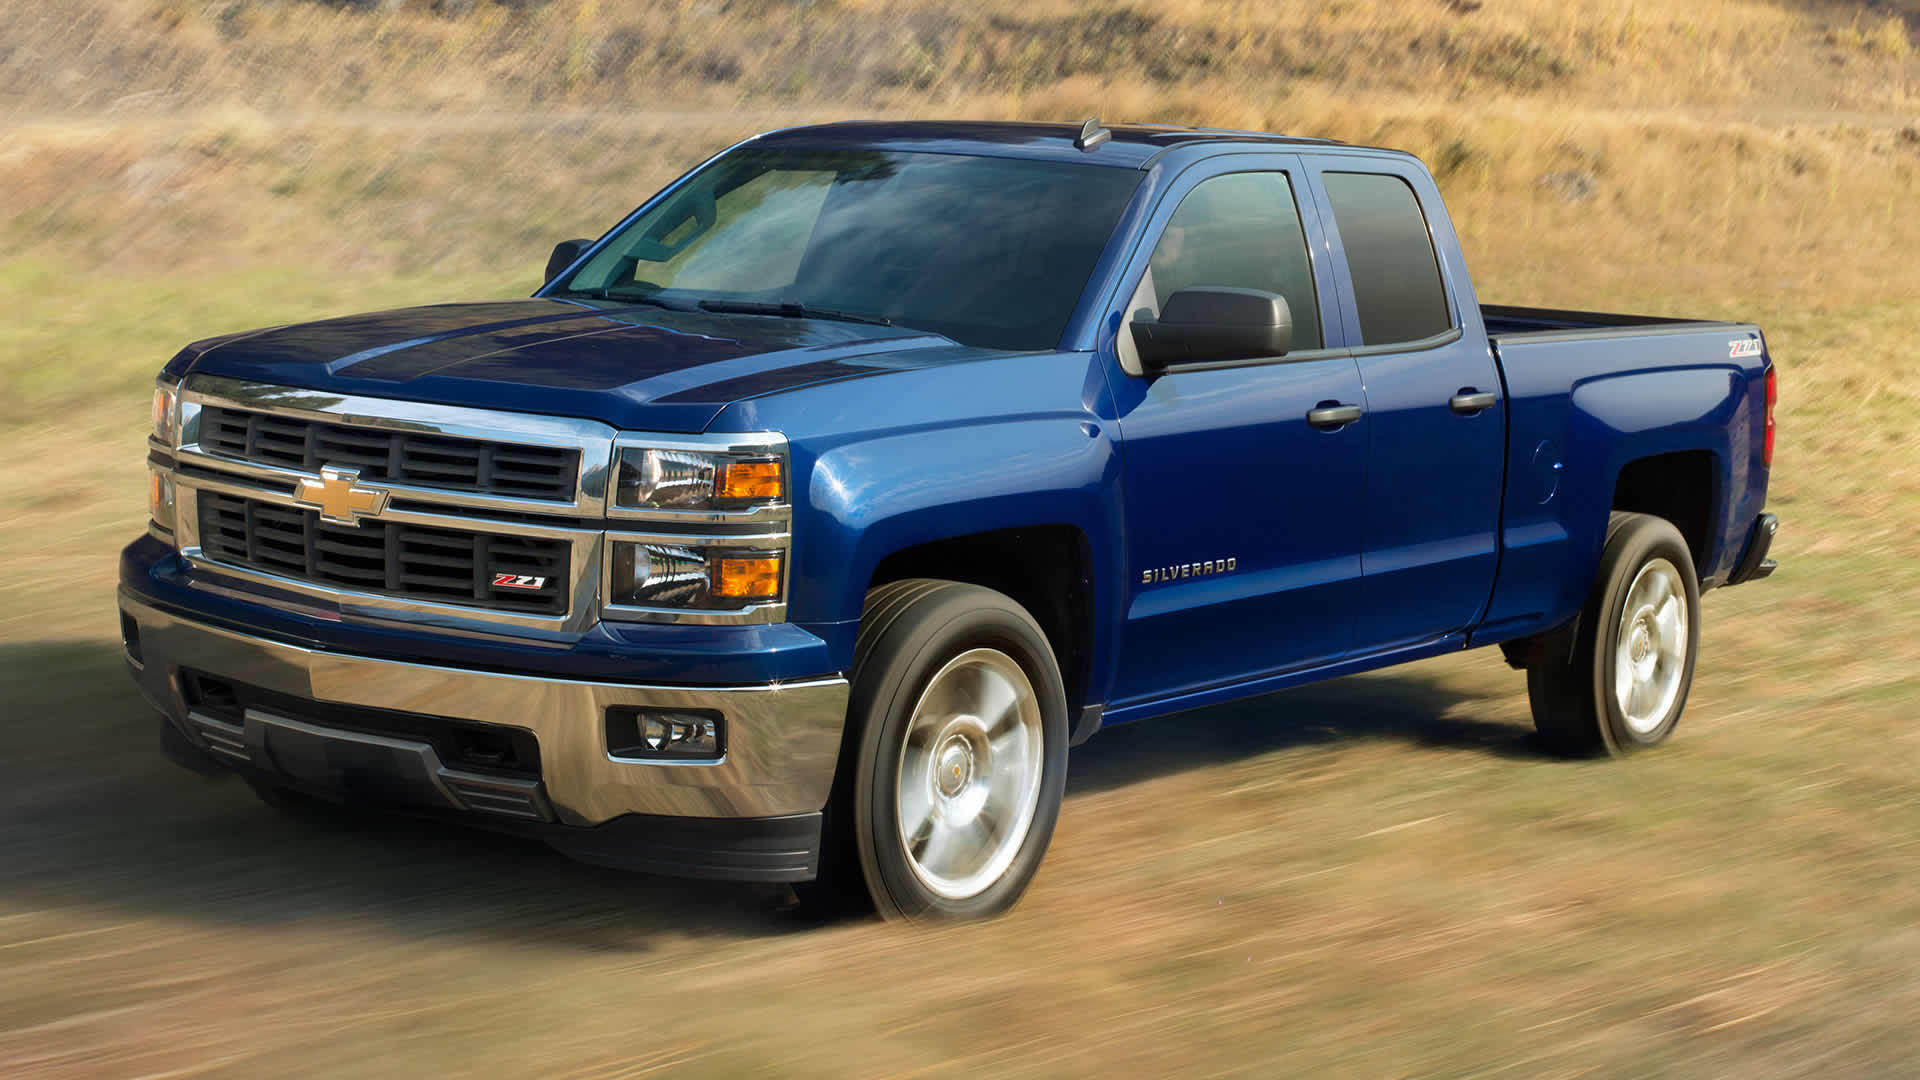 Chevy_Silverado_Photo_source_Chevrolet_com gm news and recalls  at crackthecode.co